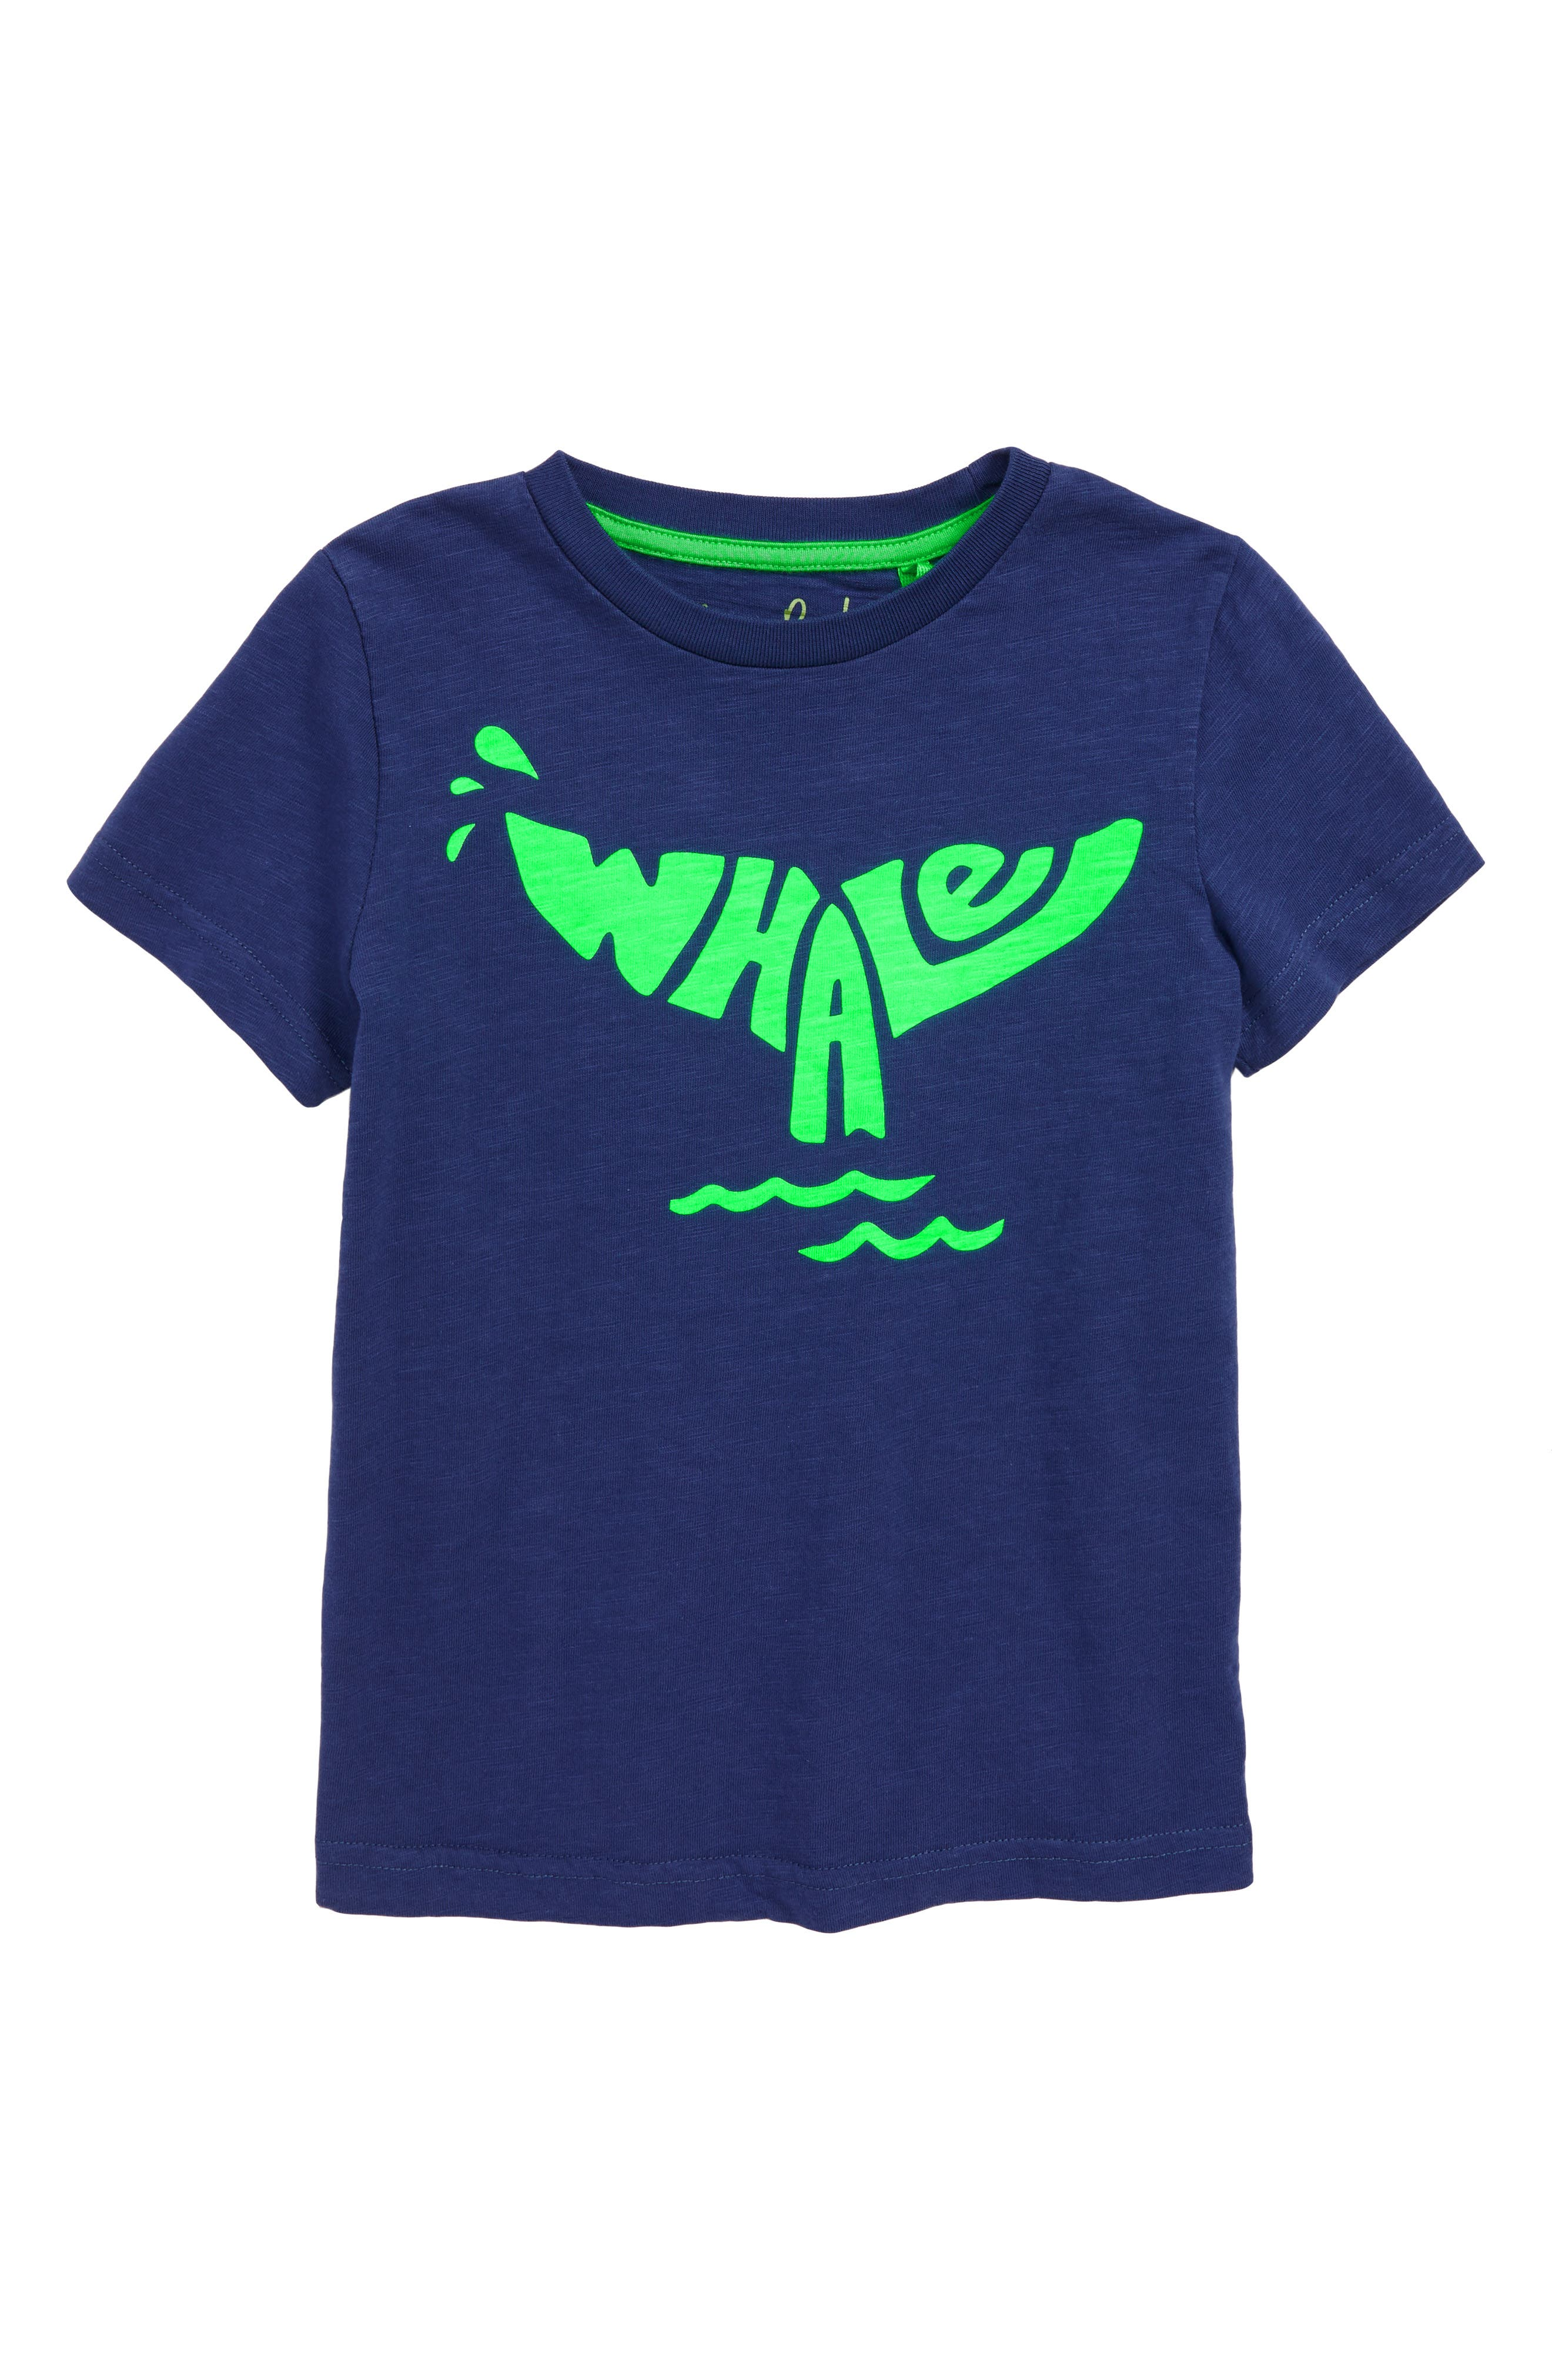 Fluoro Whale T-Shirt,                         Main,                         color, 414